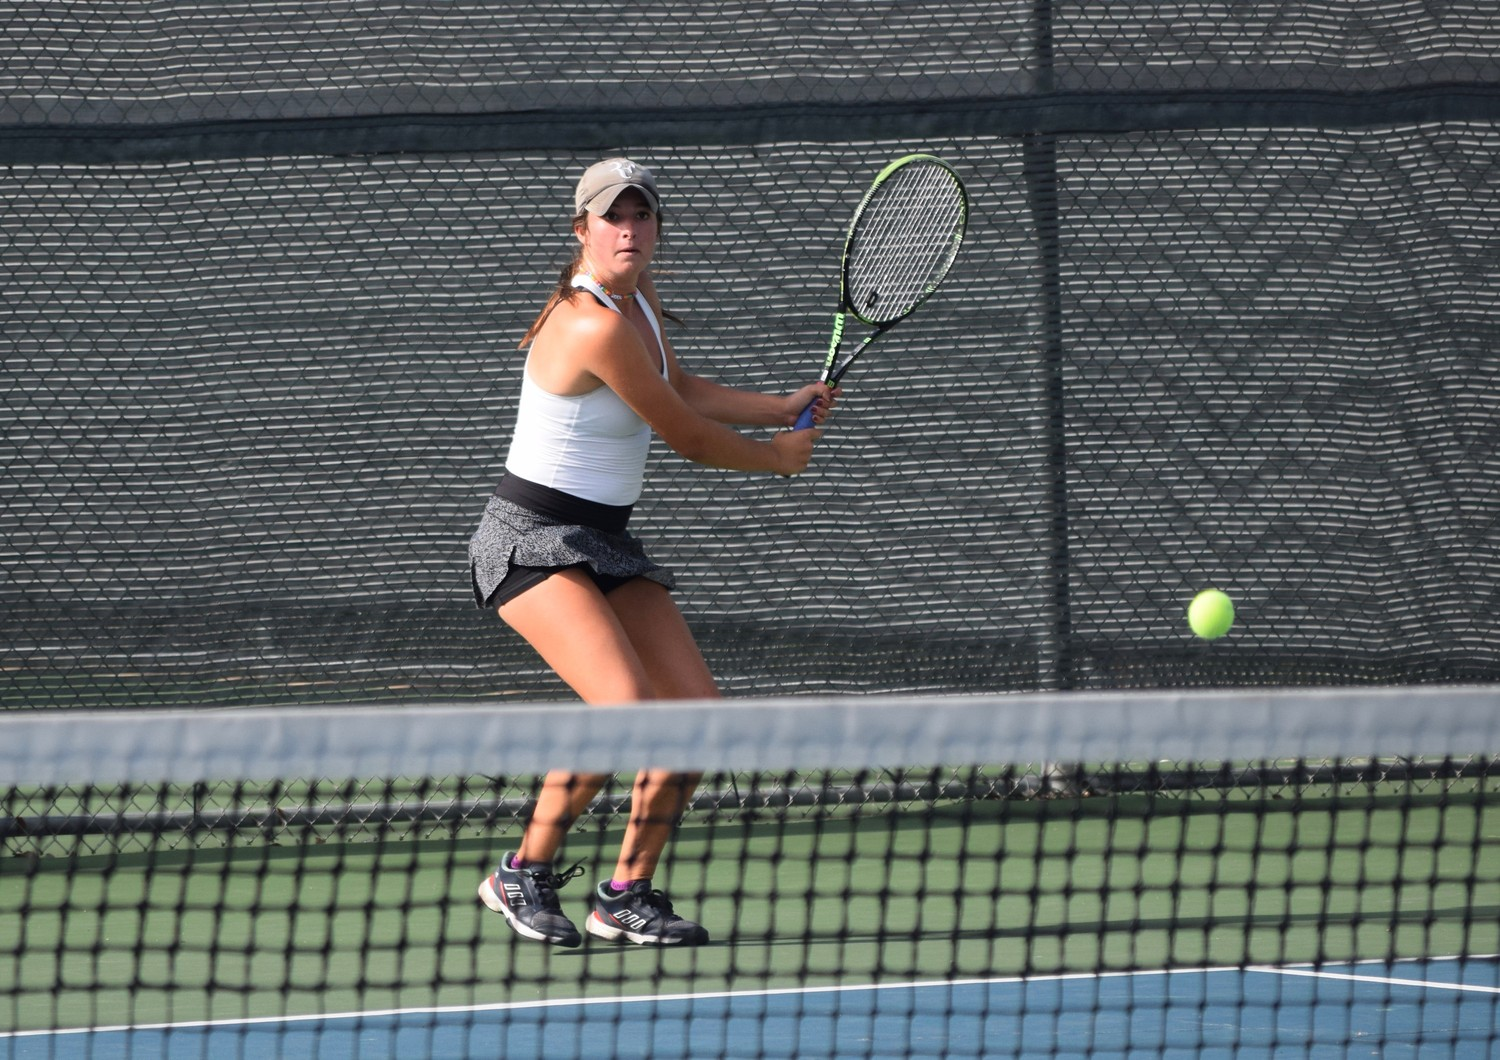 Gabby Cusano won her singles match and doubles match in state semifinals. The Vandegrift tennis team lost 10-4 to Houston Memorial.